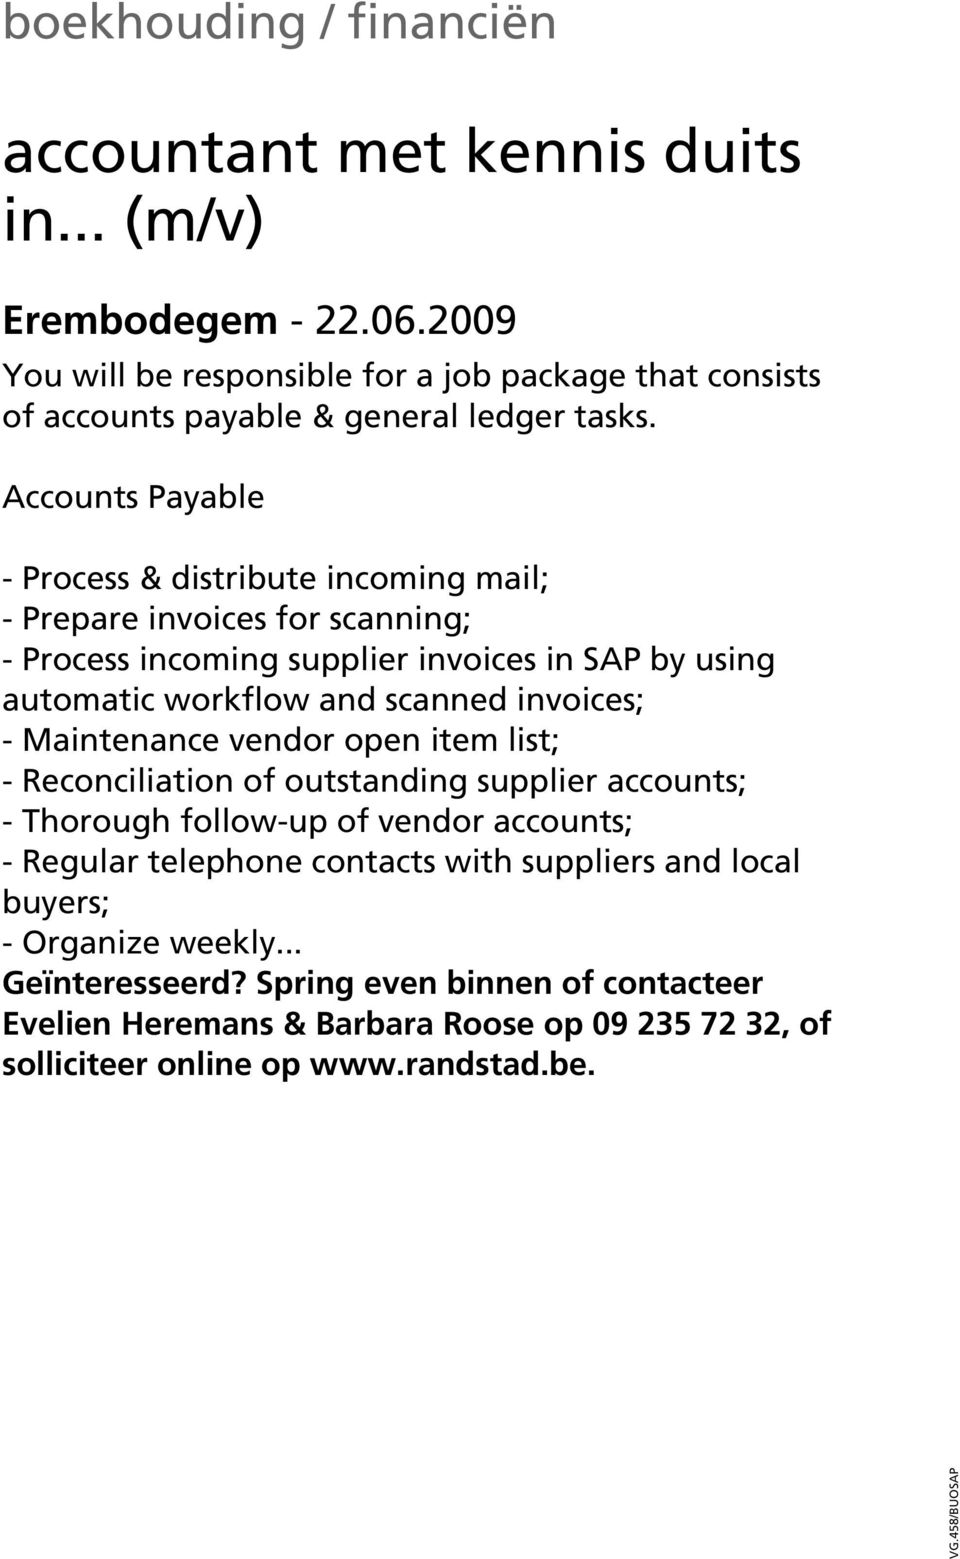 Accounts Payable - Process & distribute incoming mail; - Prepare invoices for scanning; - Process incoming supplier invoices in SAP by using automatic workflow